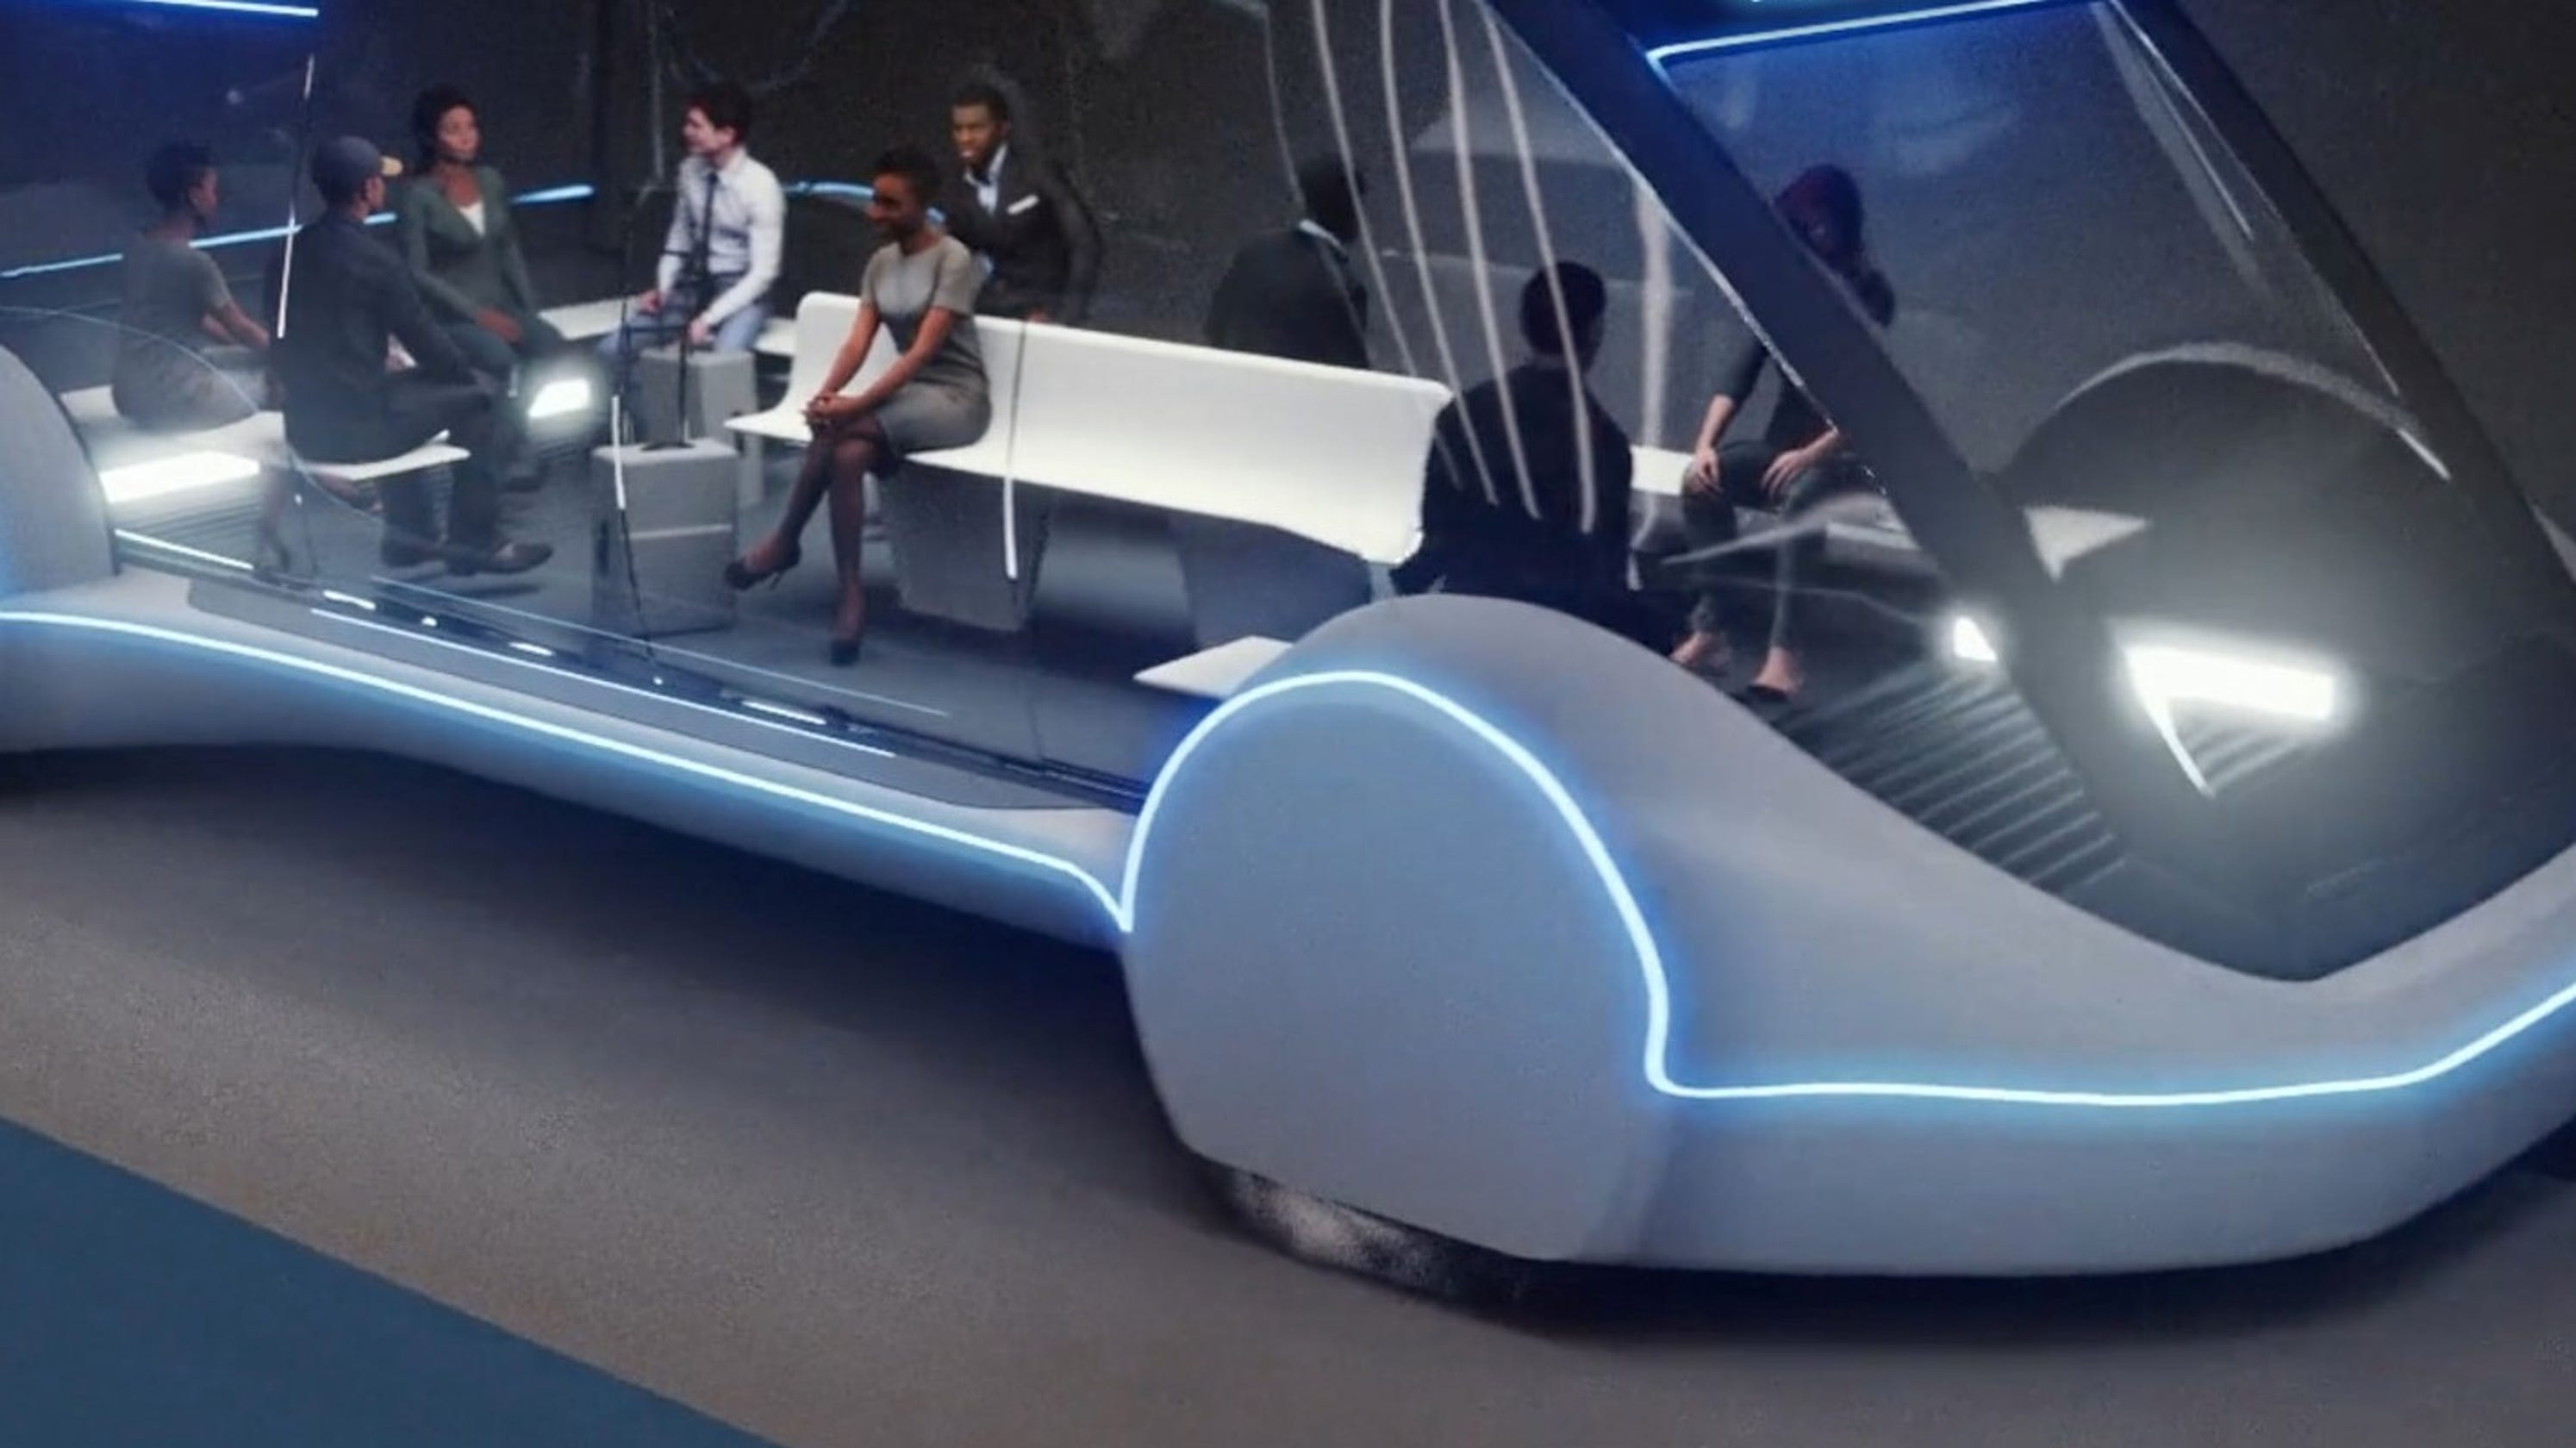 Elon Musk Proposes Los Angeles Tunnel To Dodger Stadium - Elysian park car show 2018